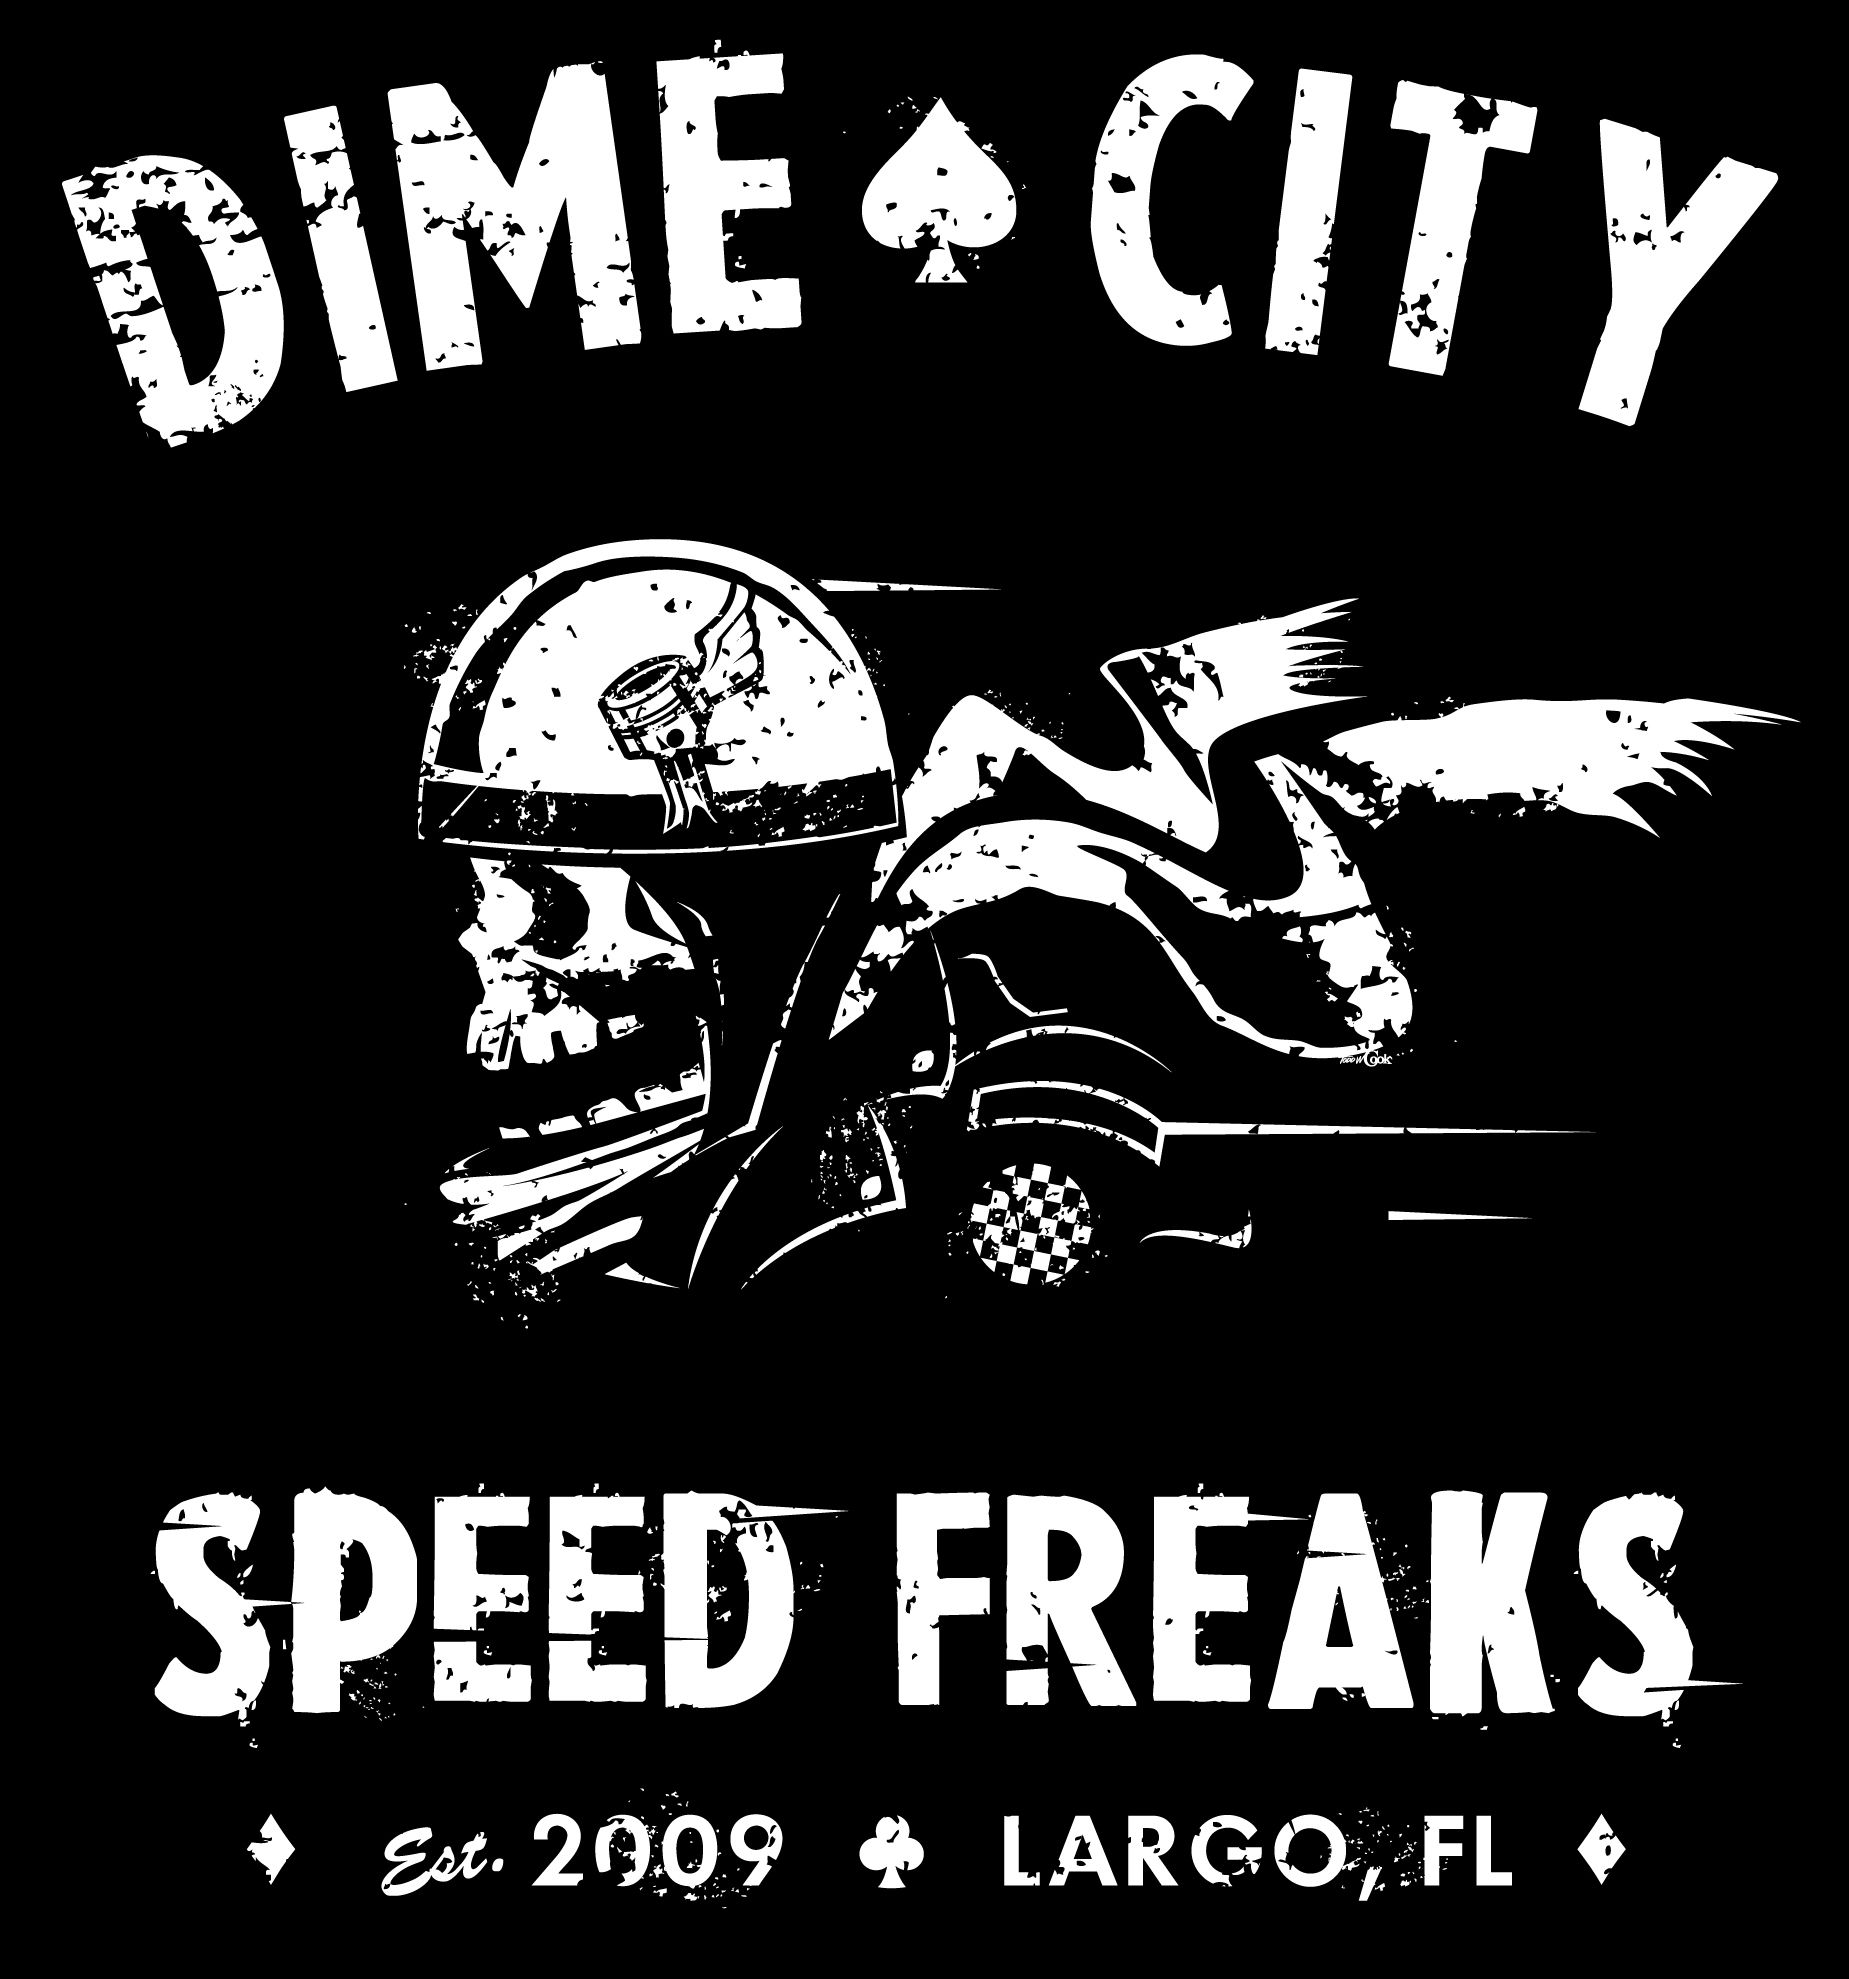 cafe racer t shirt design for dime city cyclestodd cook | art